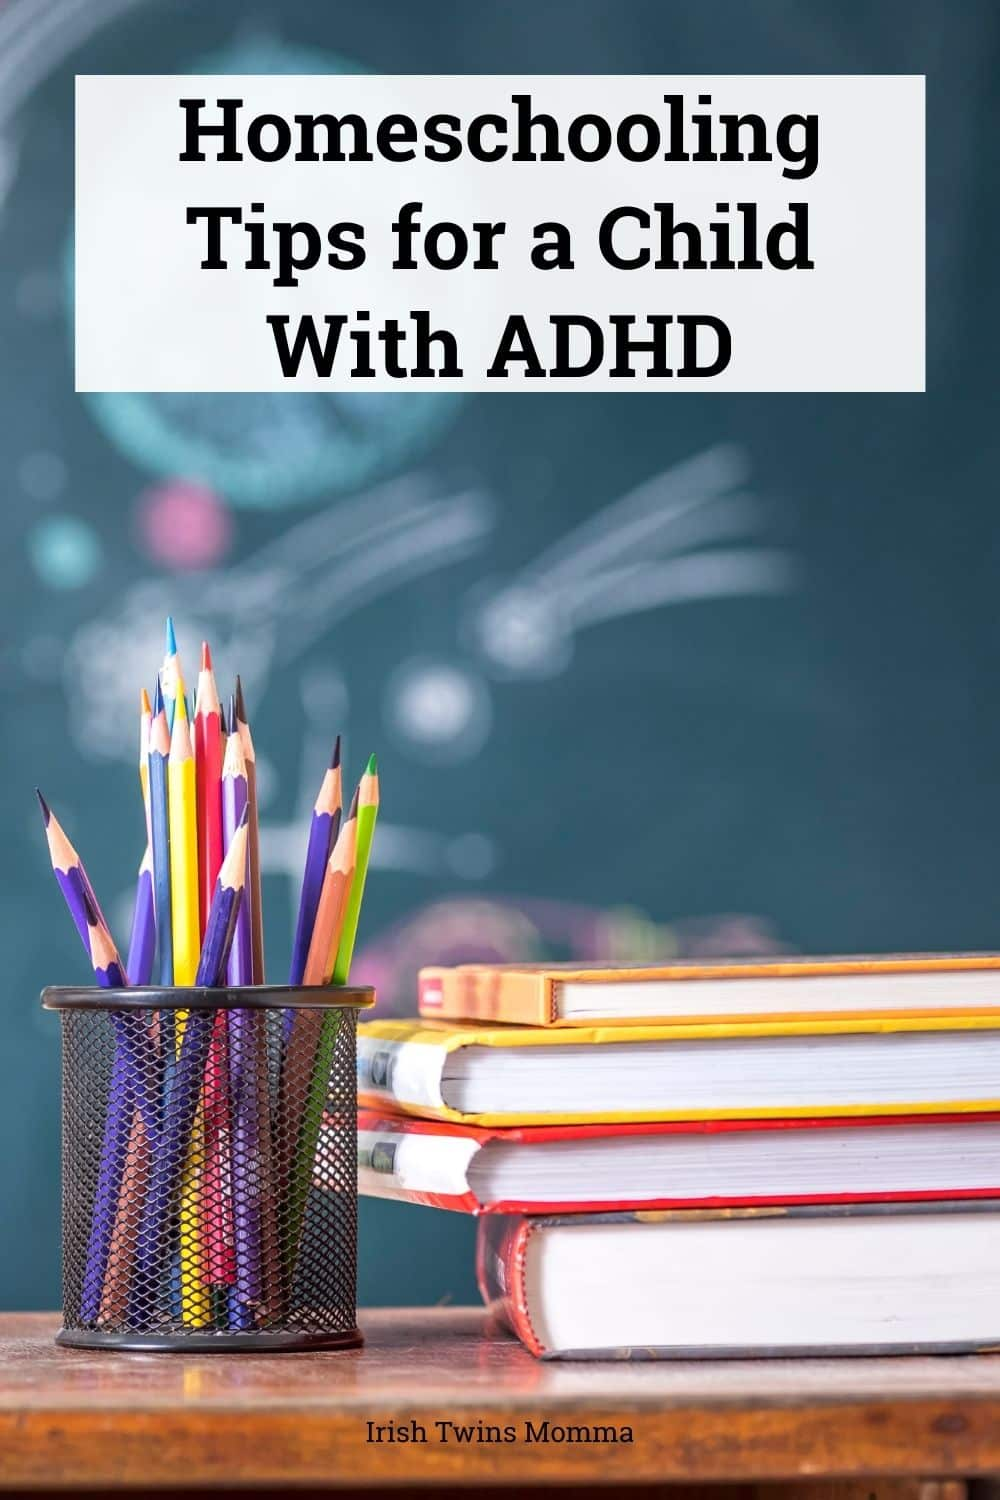 Homeschooling Tips for a Child With ADHD